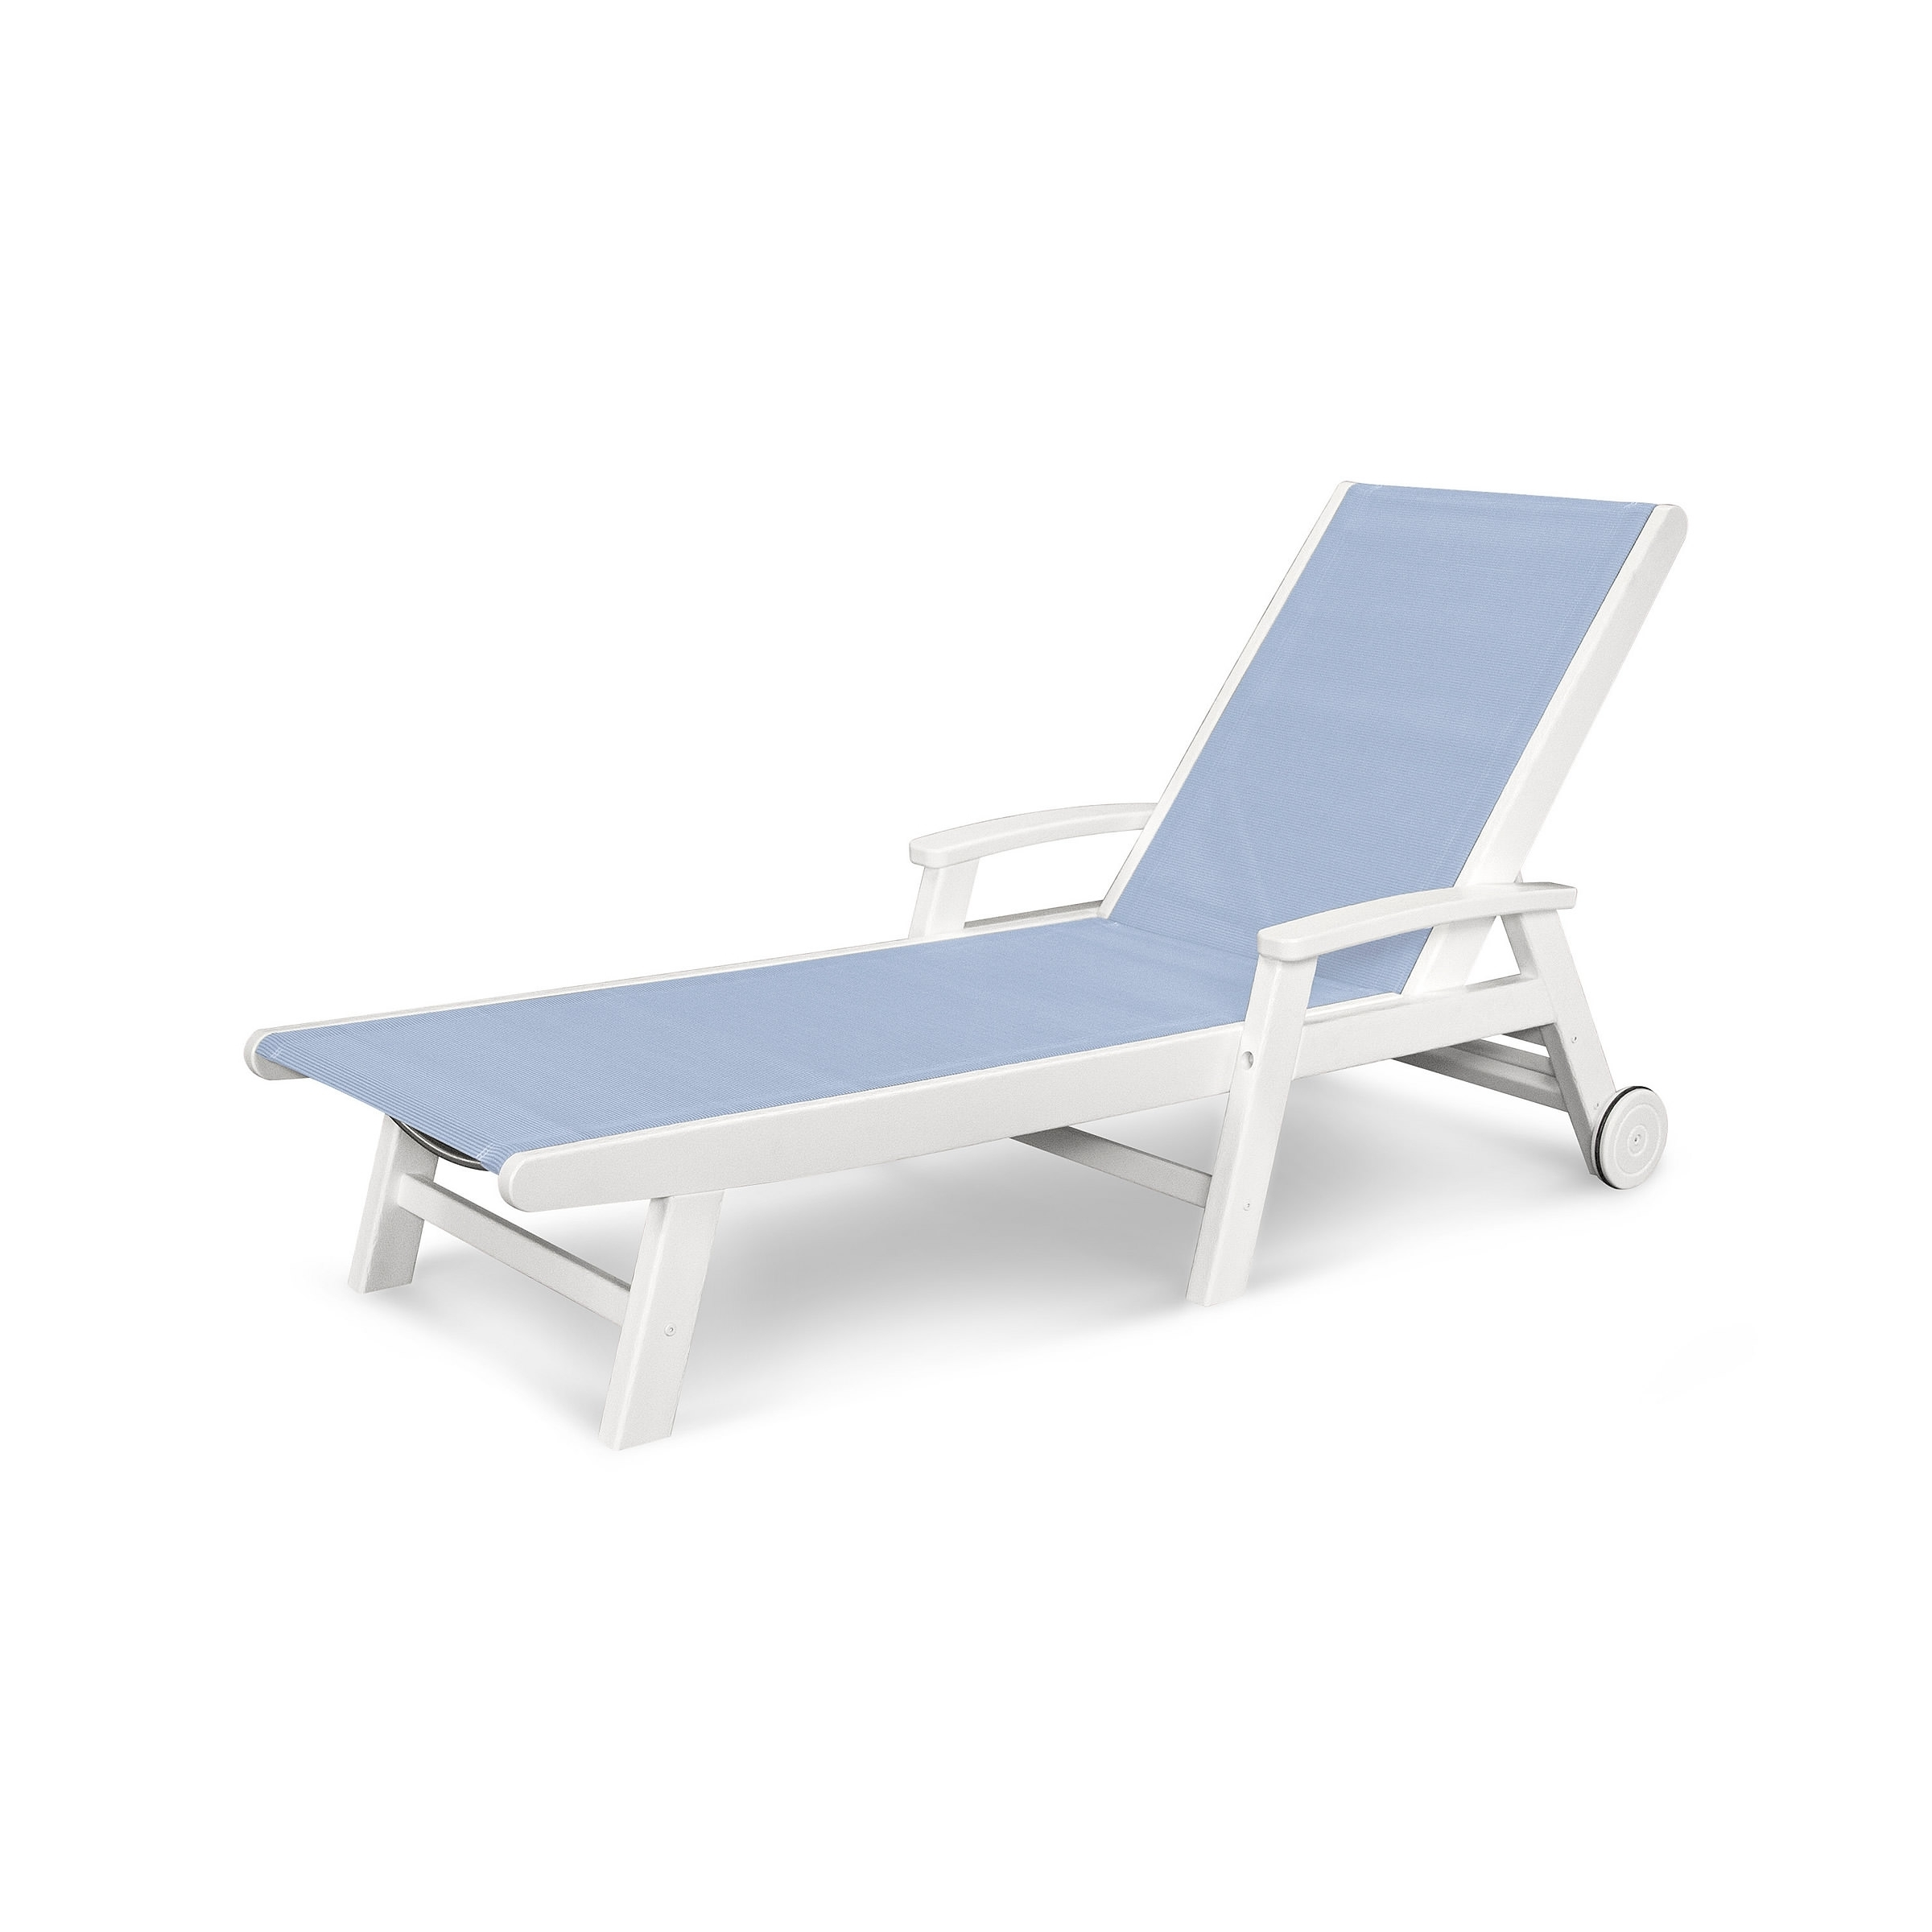 Resin Chaise Lounge Chairs • Lounge Chairs Ideas Within Favorite Resin Chaise Lounge Chairs (View 9 of 15)